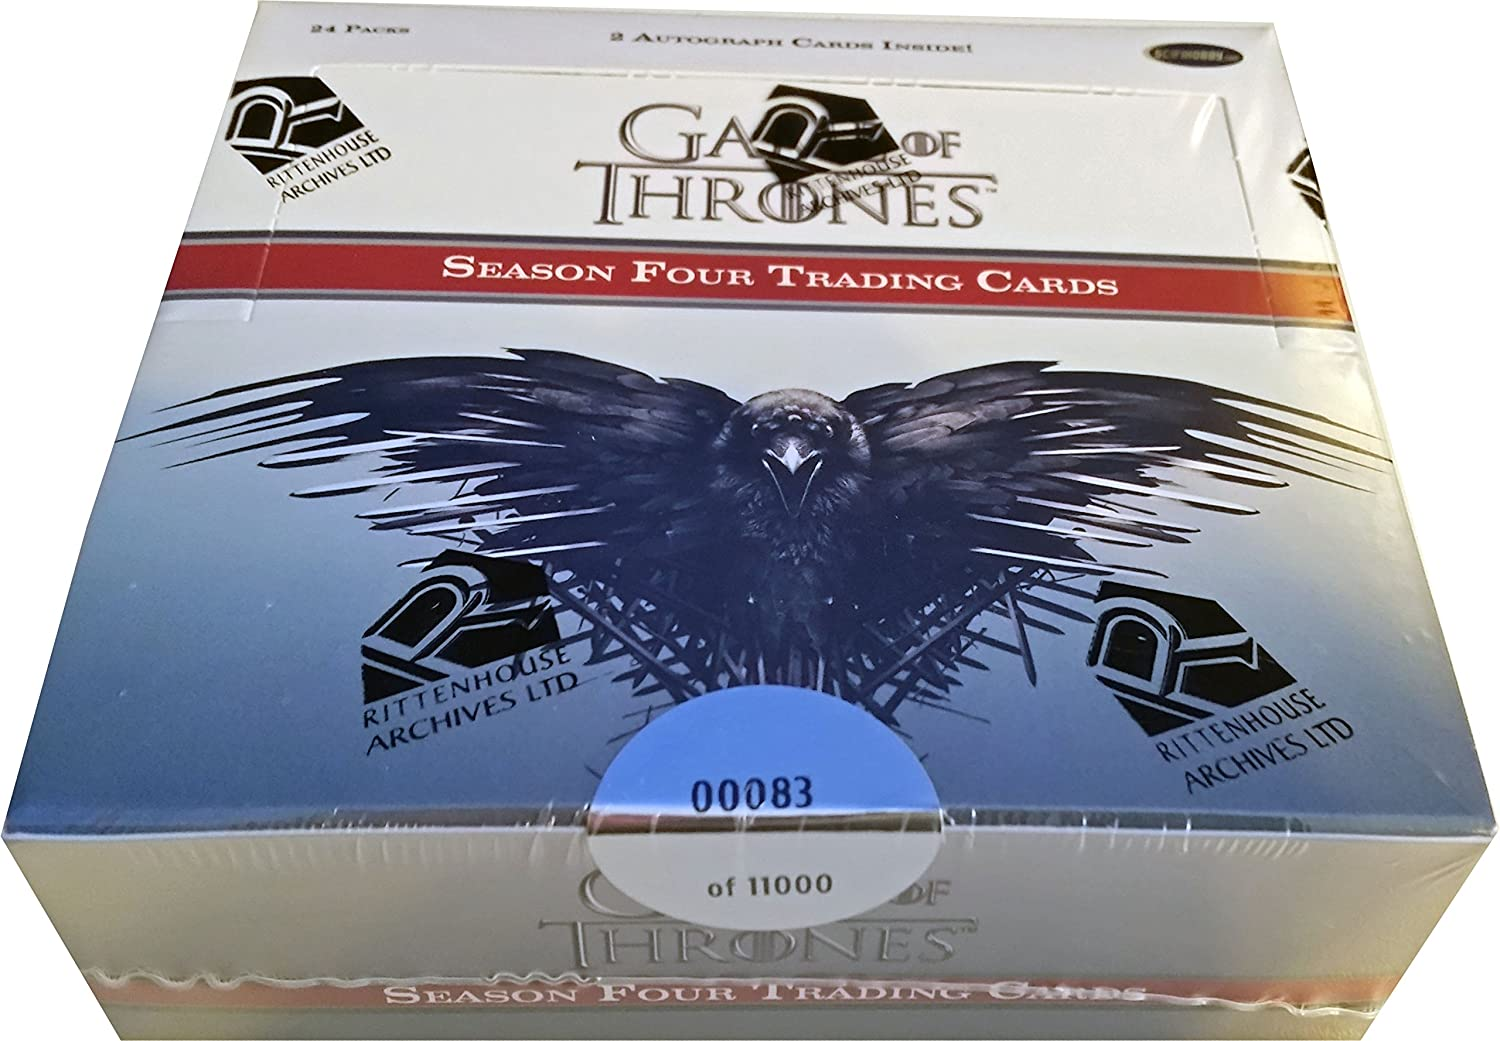 2 Autographs per Box Game of Thrones Season 6 Factory Sealed Box